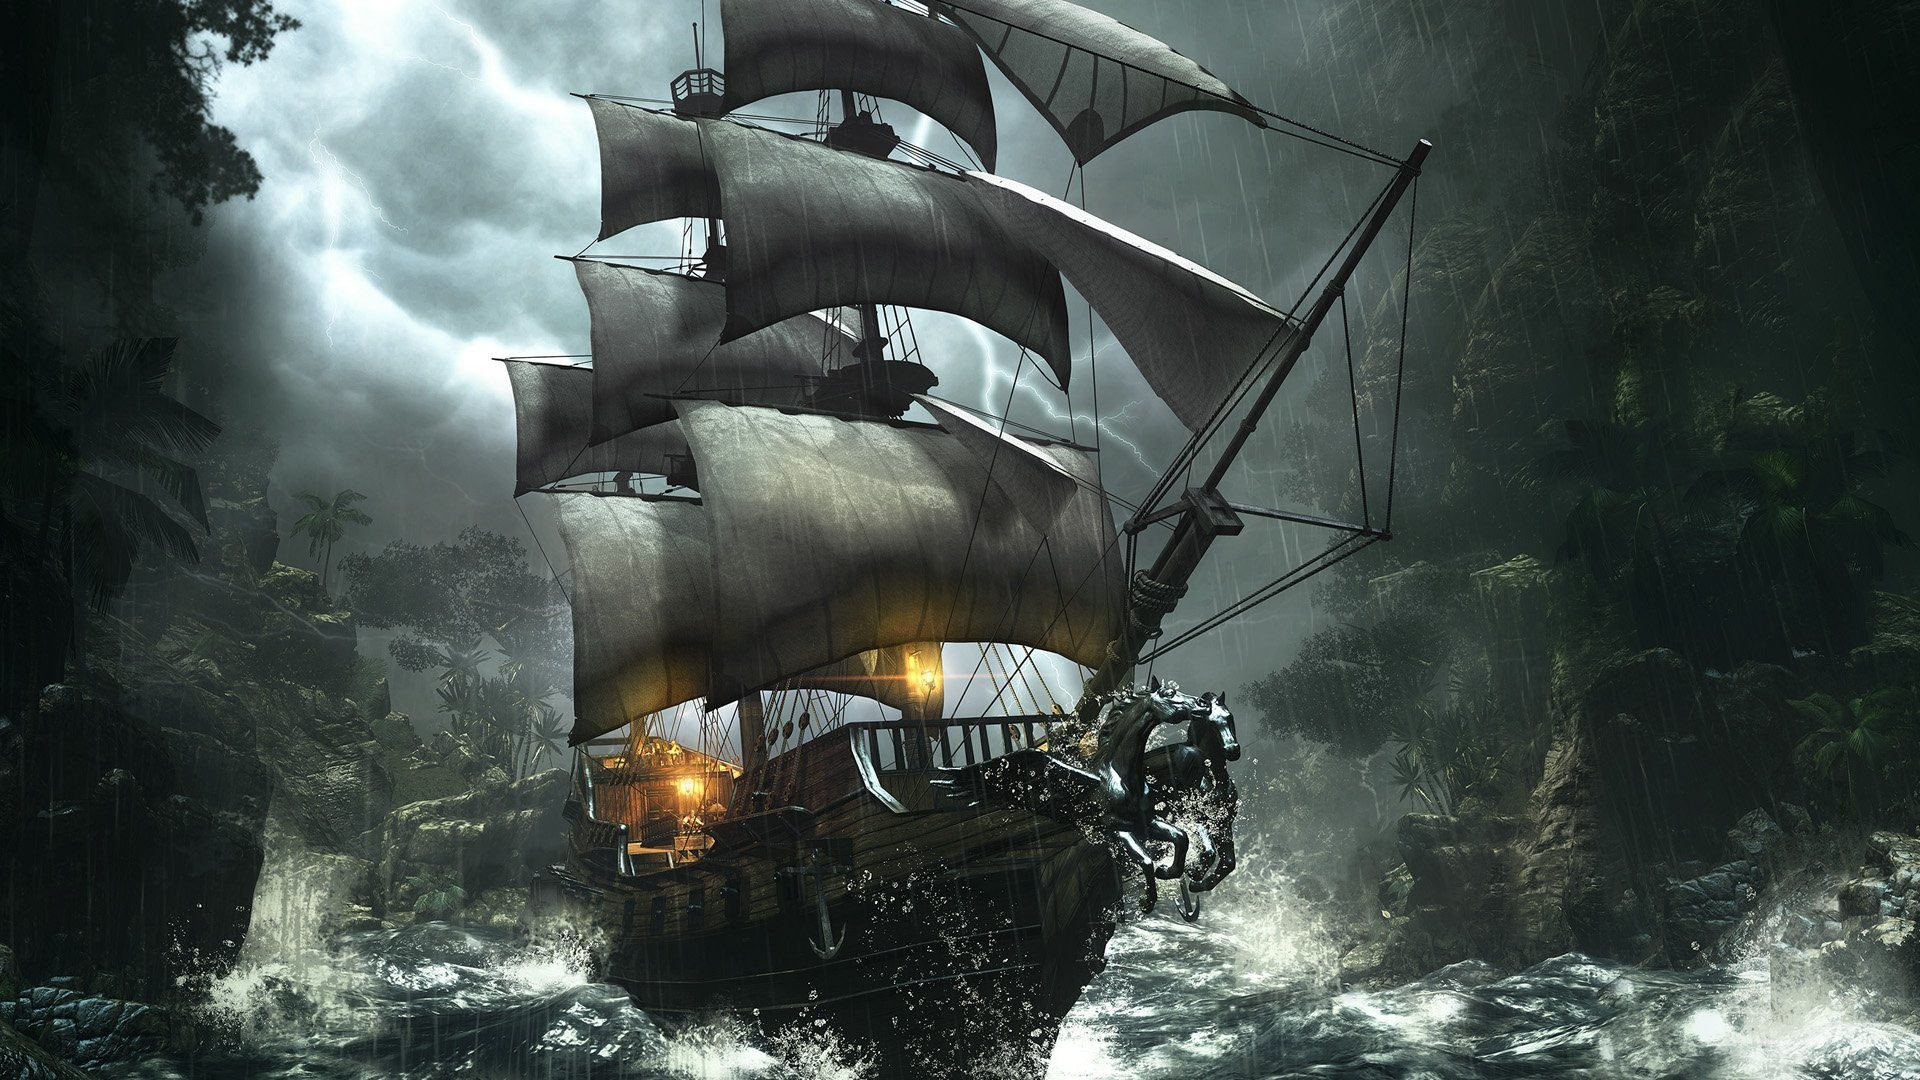 Pirate Ship Wallpaper 82 images 1920x1080